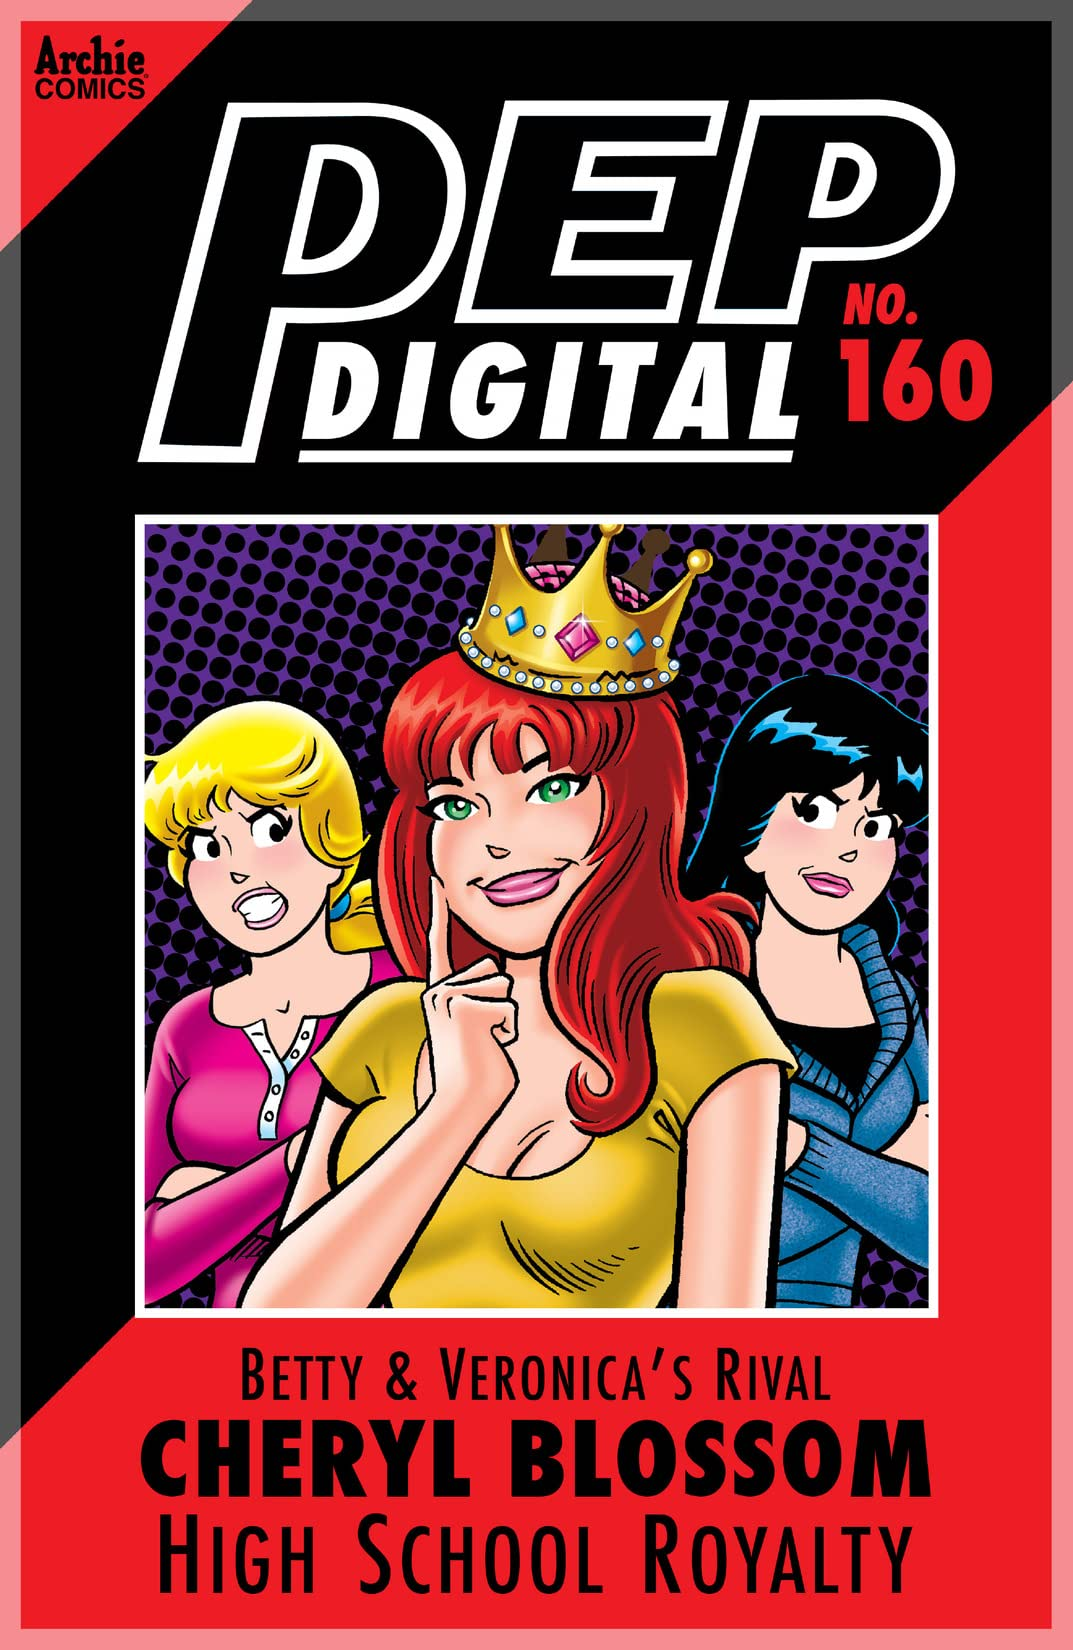 PEP Digital #160: Betty & Veronica's Rival Cheryl Blossom: High School Royalty